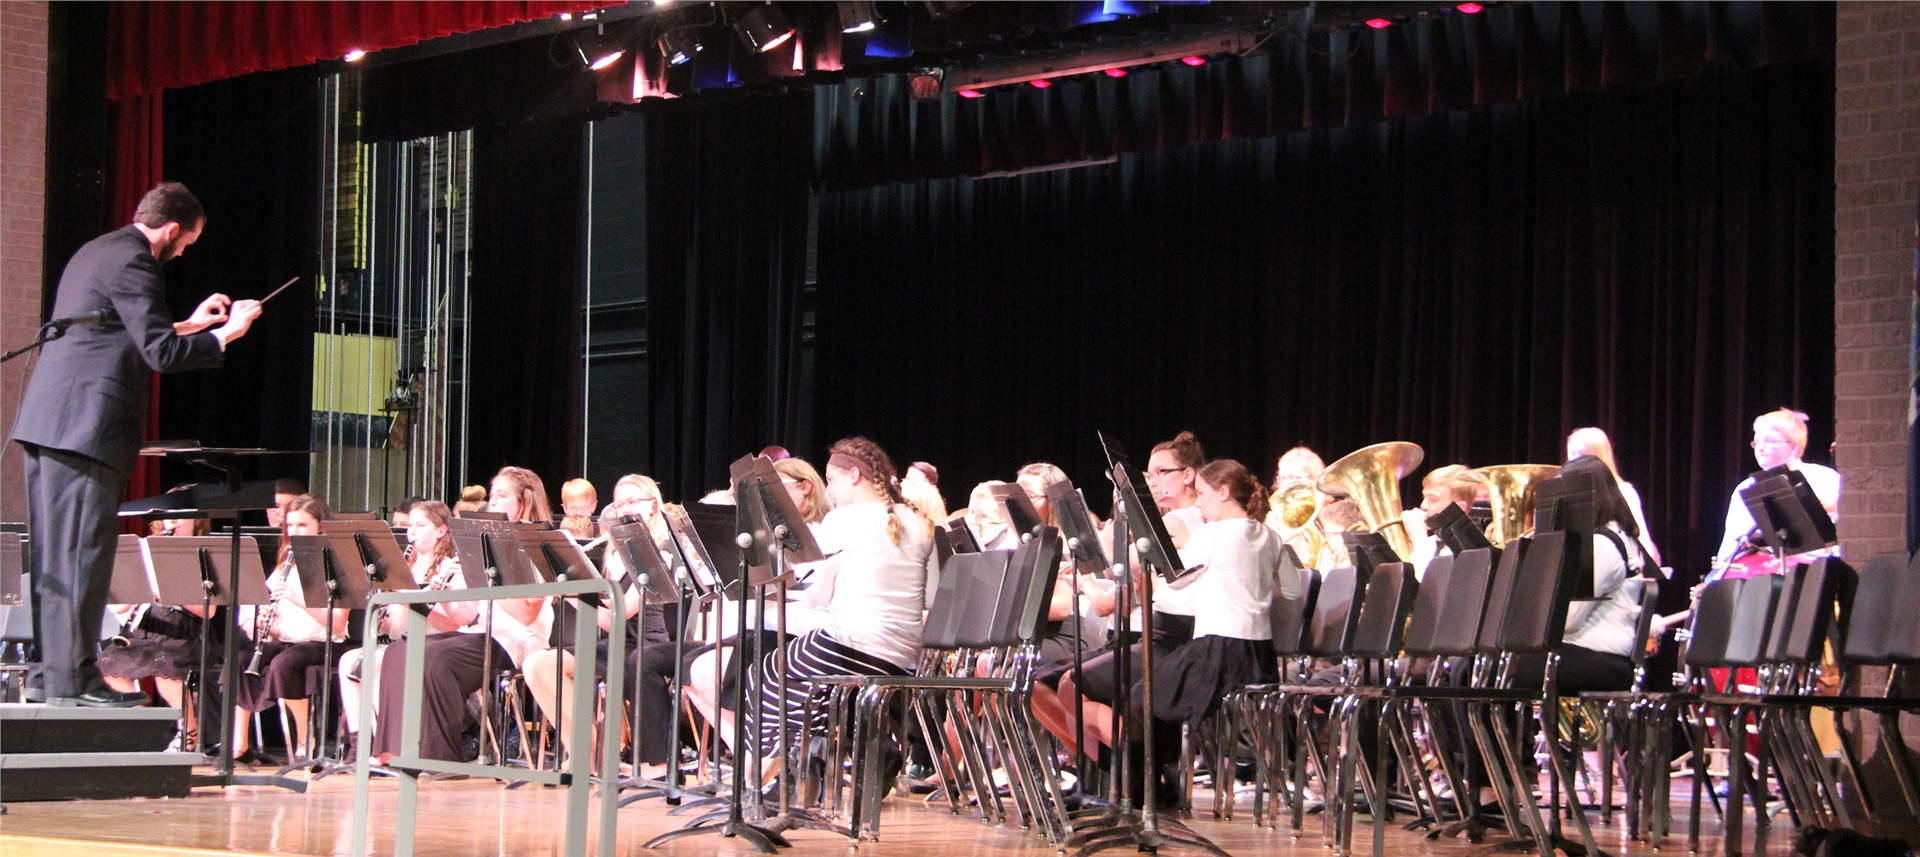 students play band instruments while teacher conducts